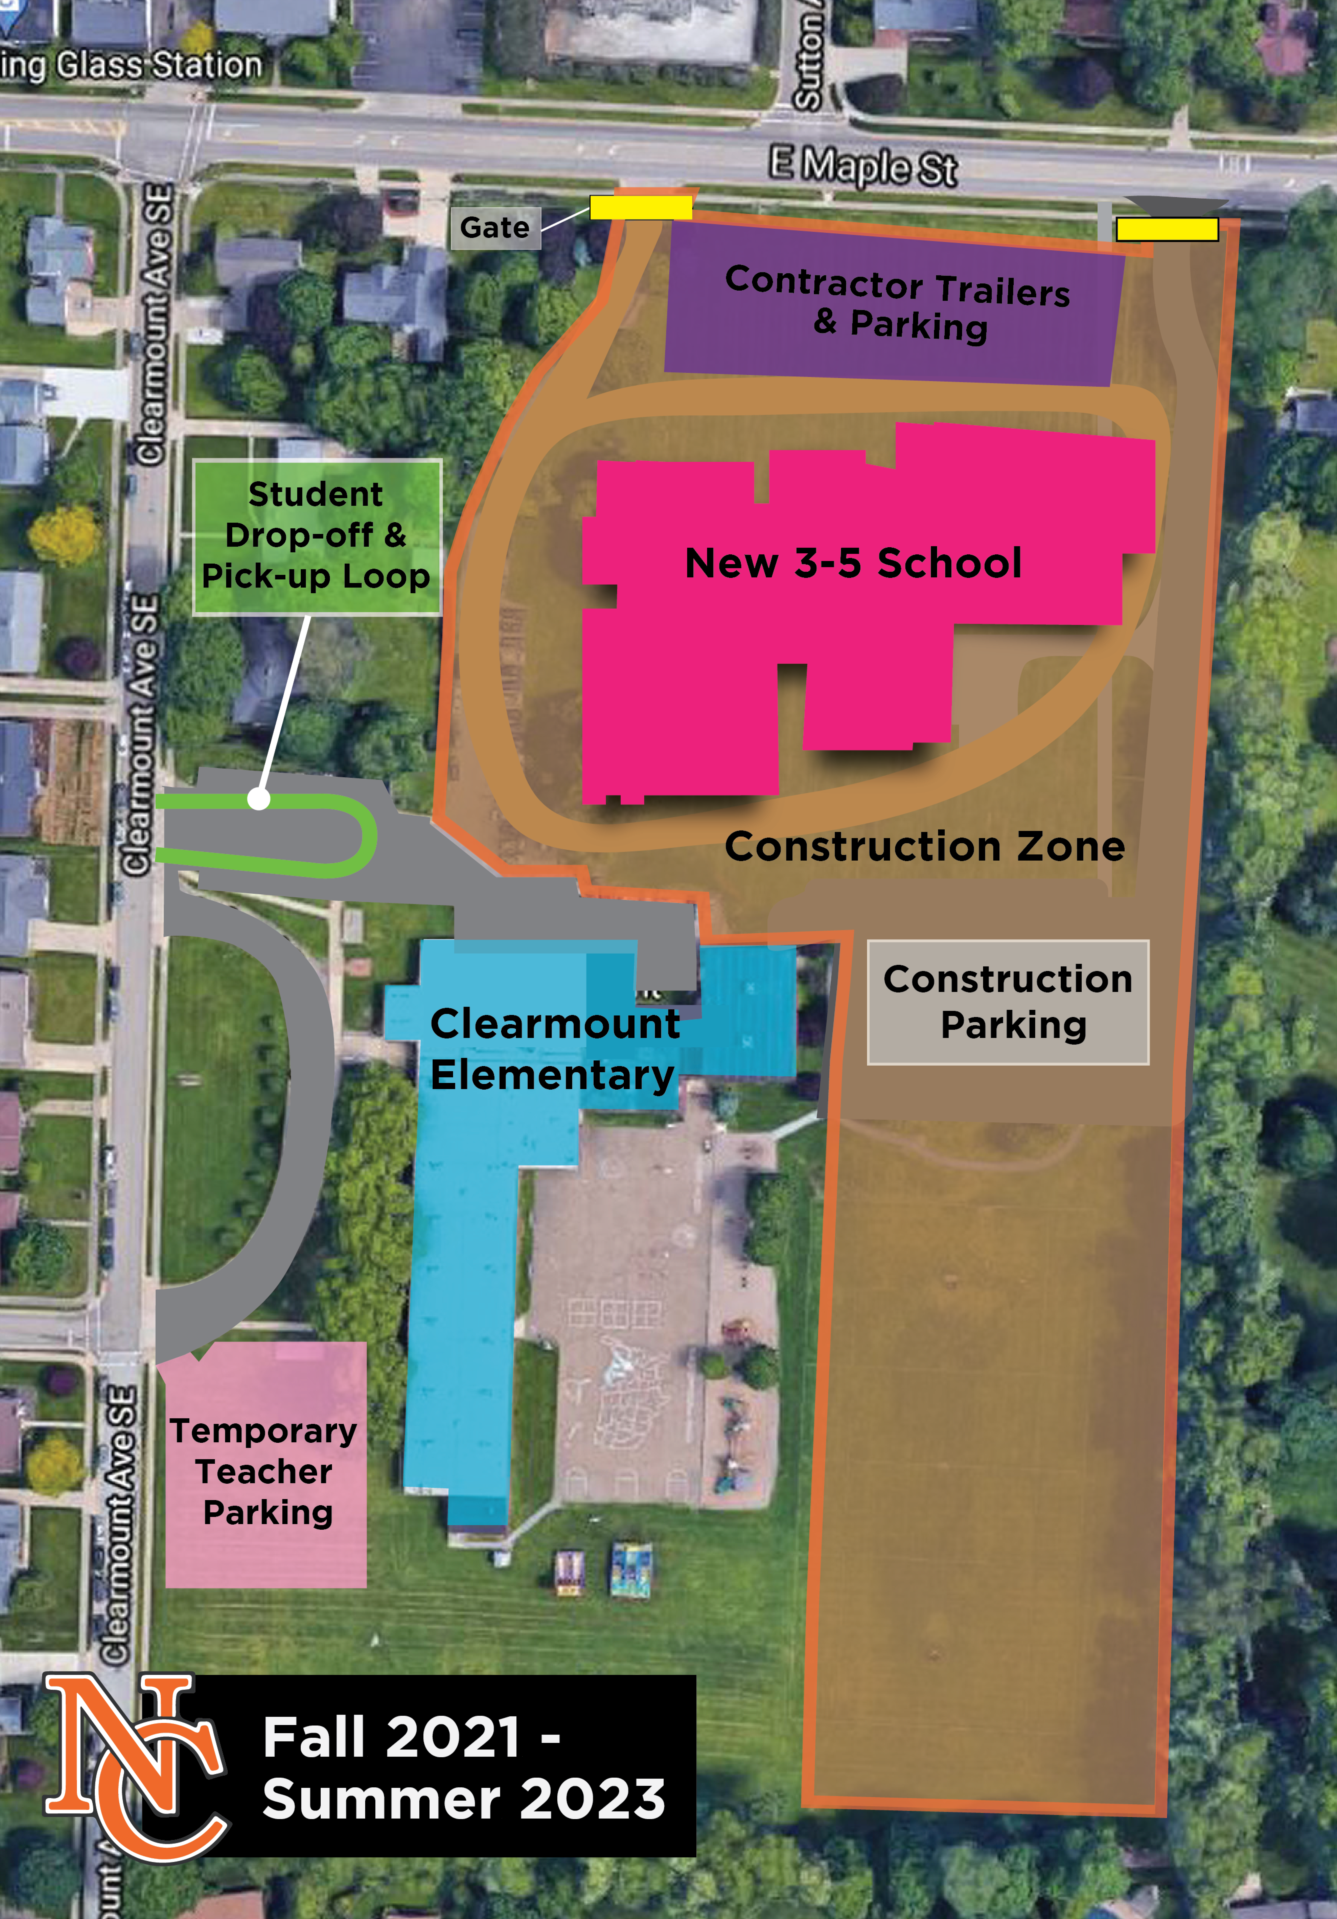 site map for the construction area at Clearmount Elementary